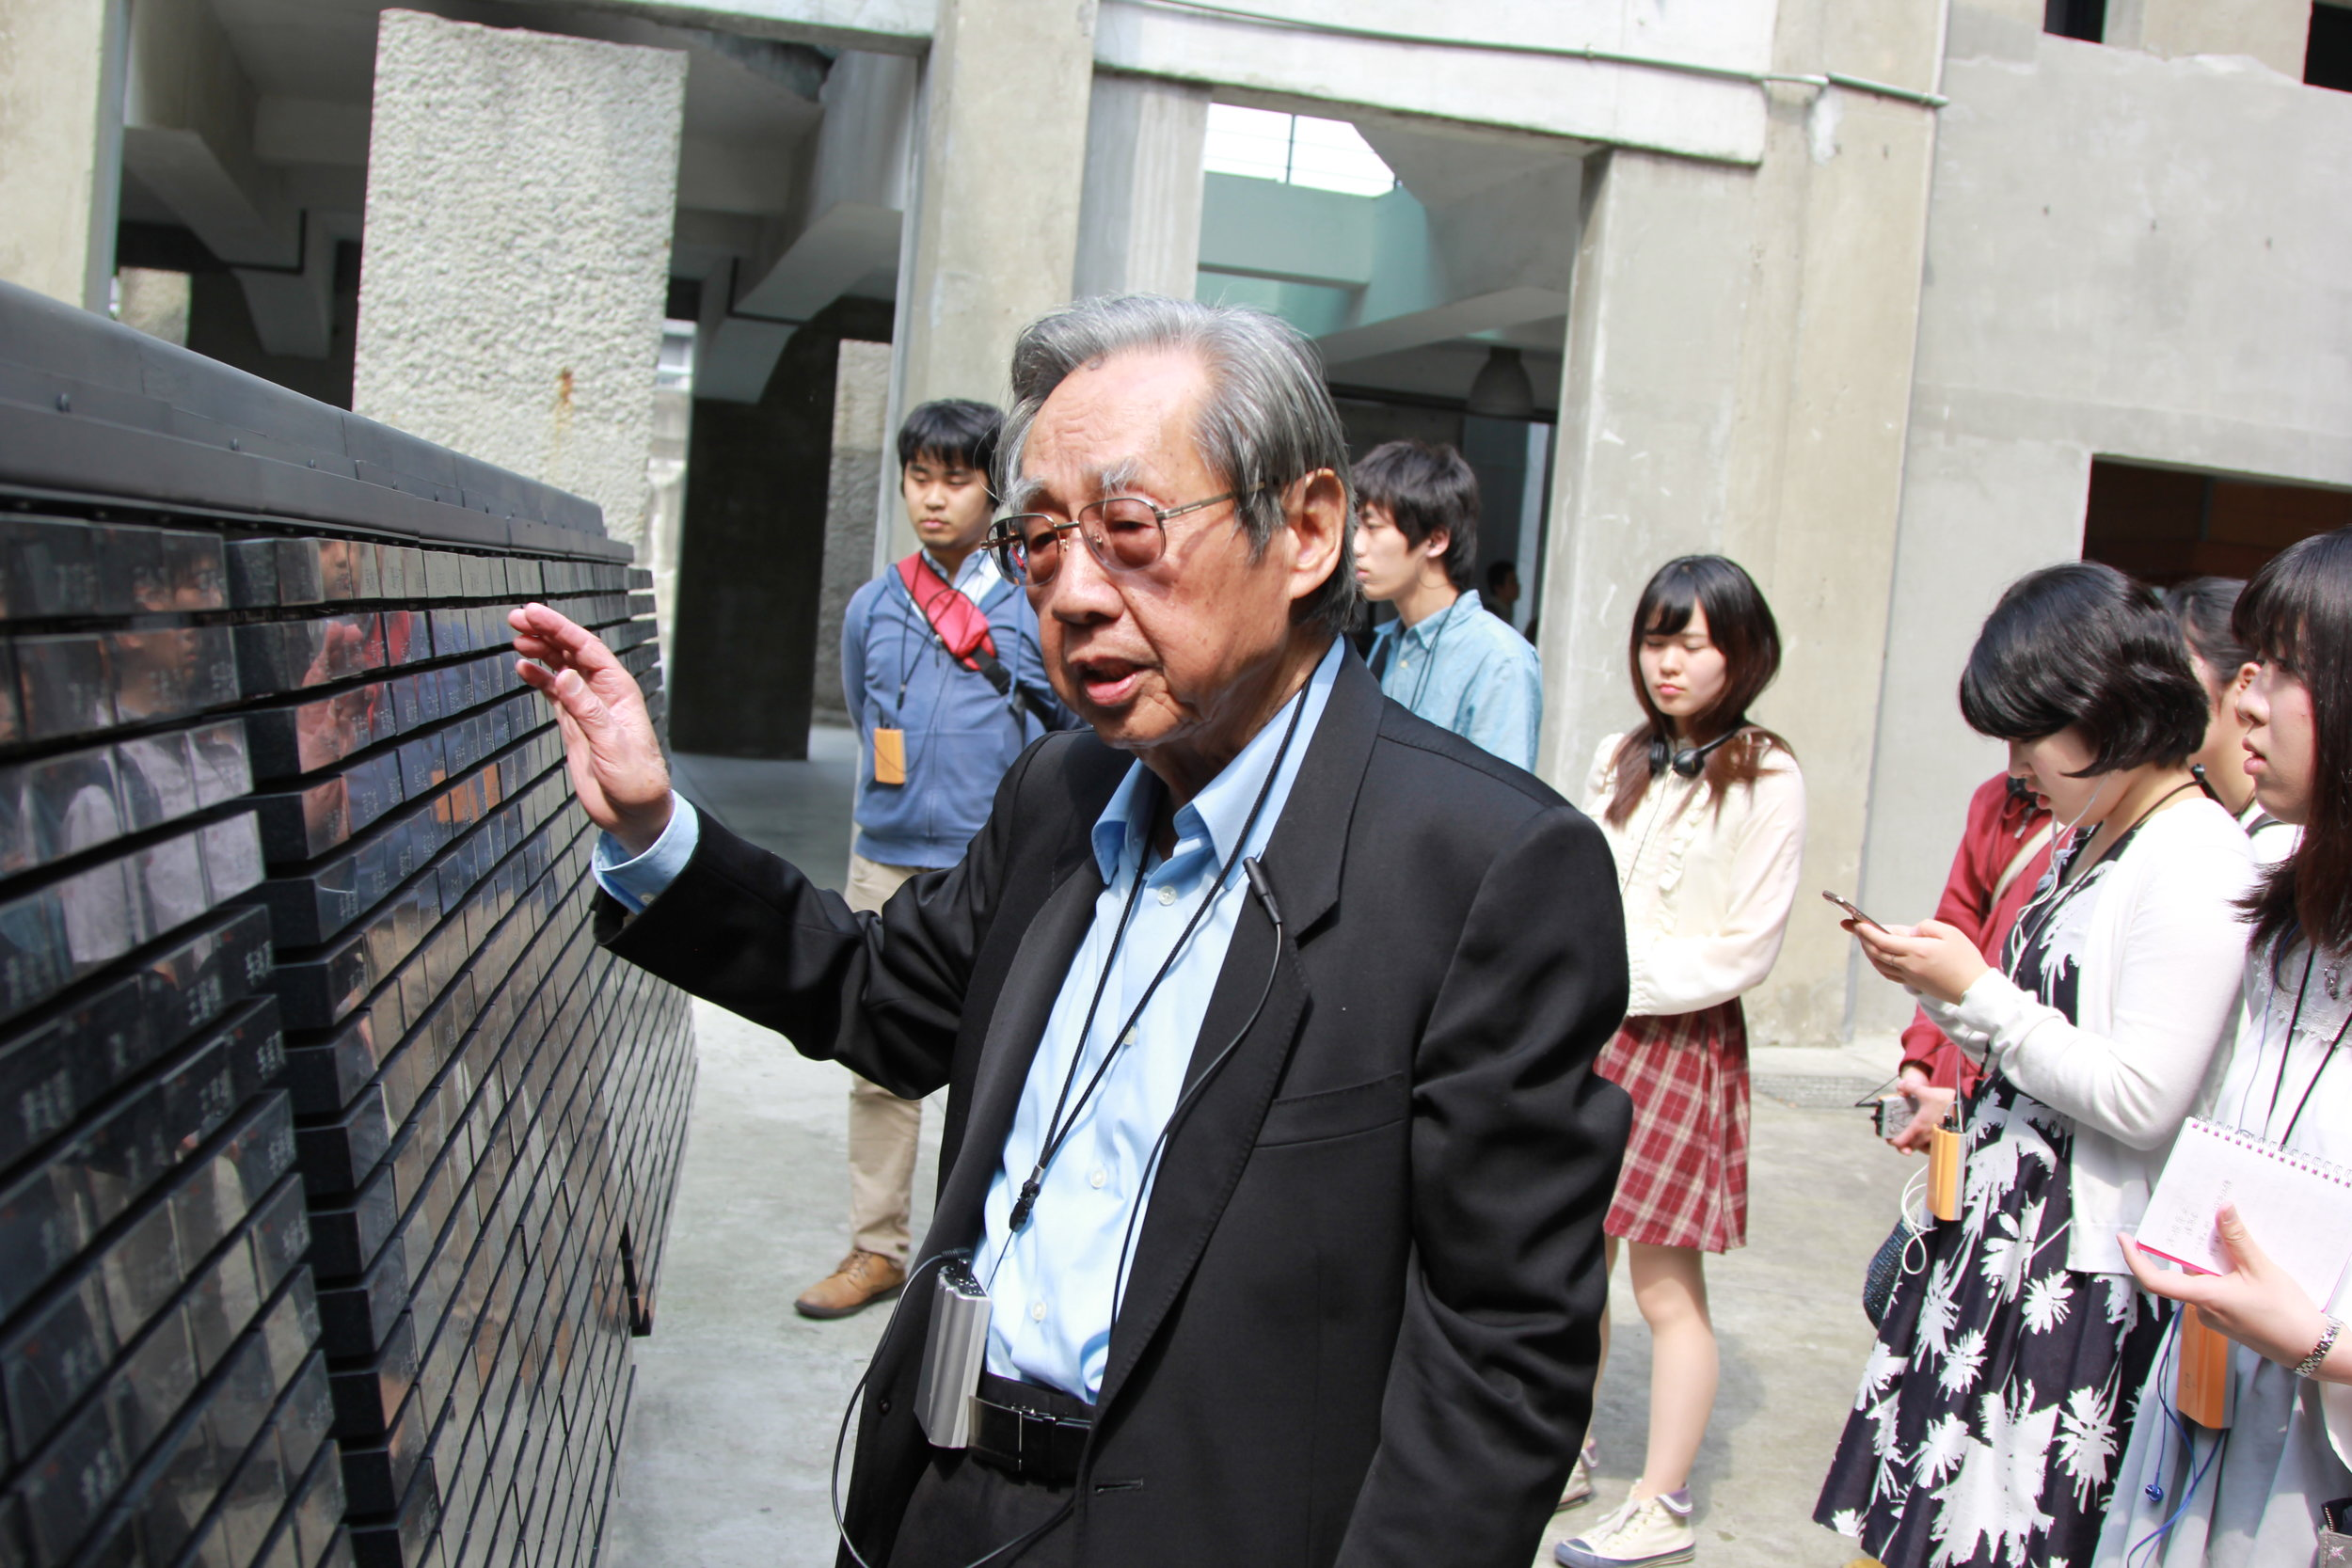 Mr Tsai Kunlin guides the students around the Jingmei Human Rights Museum